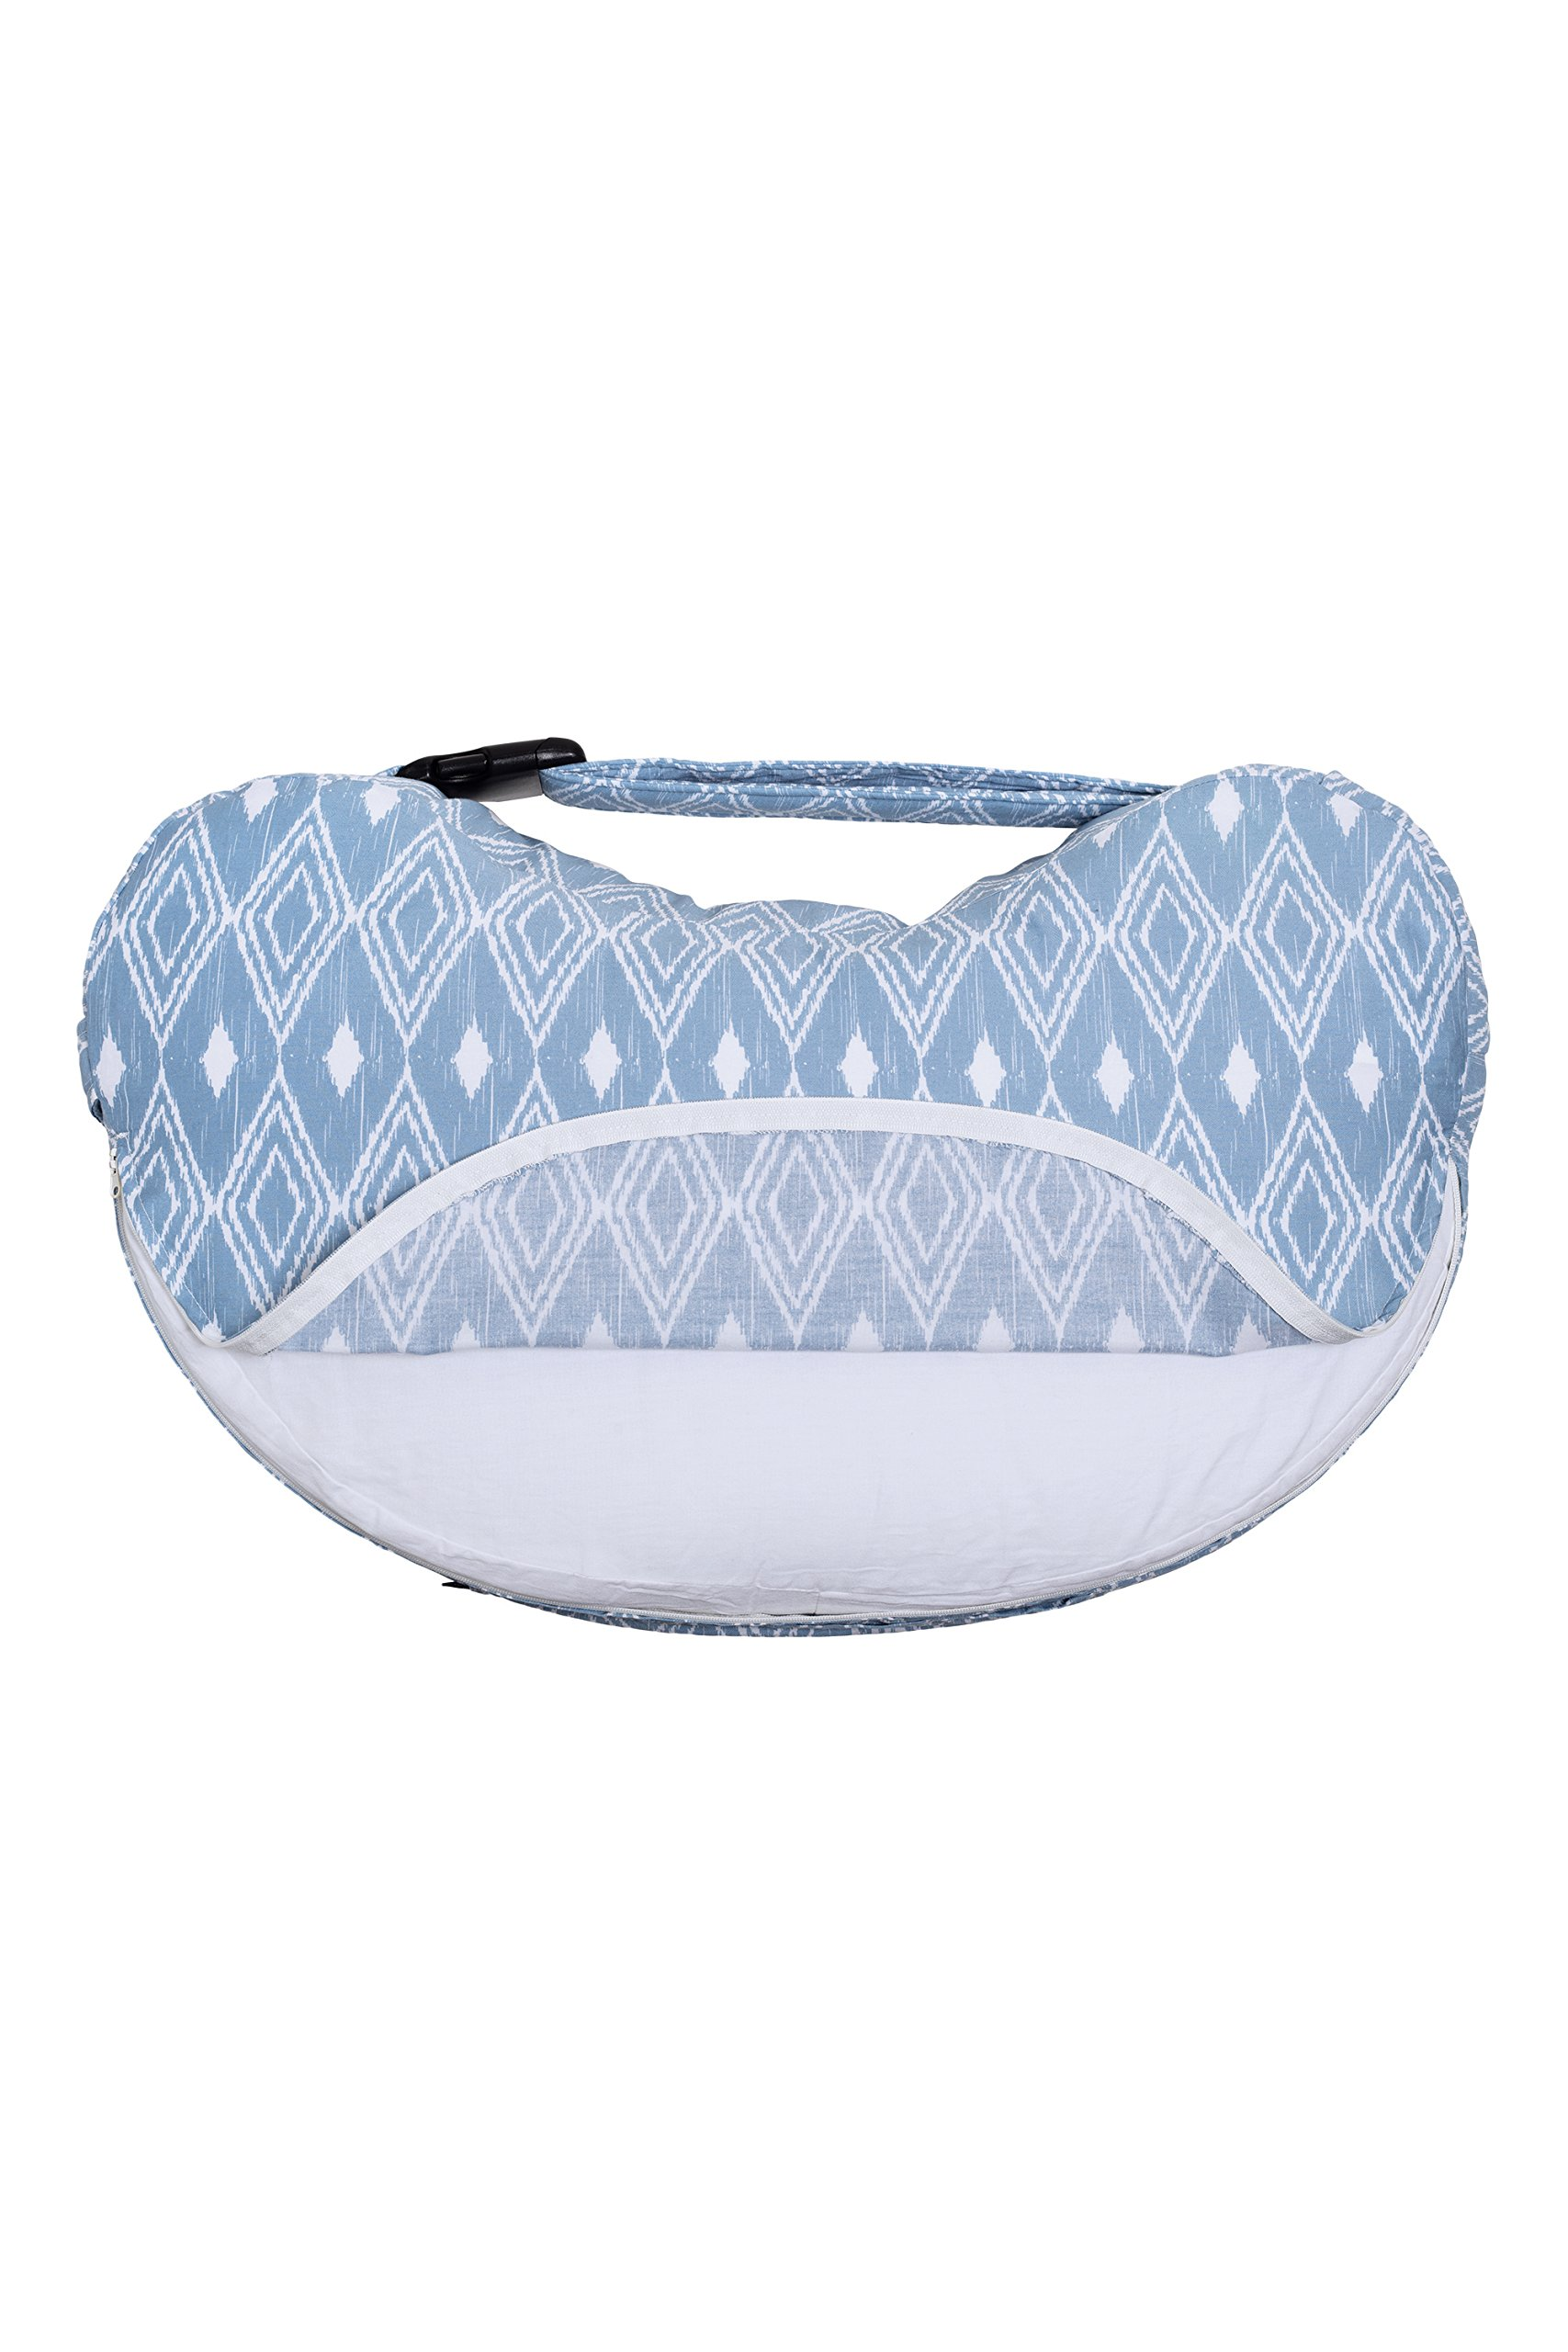 Bebe au Lait Premium Cotton Nursing Pillow Slipcover, Belize by Bebe au Lait